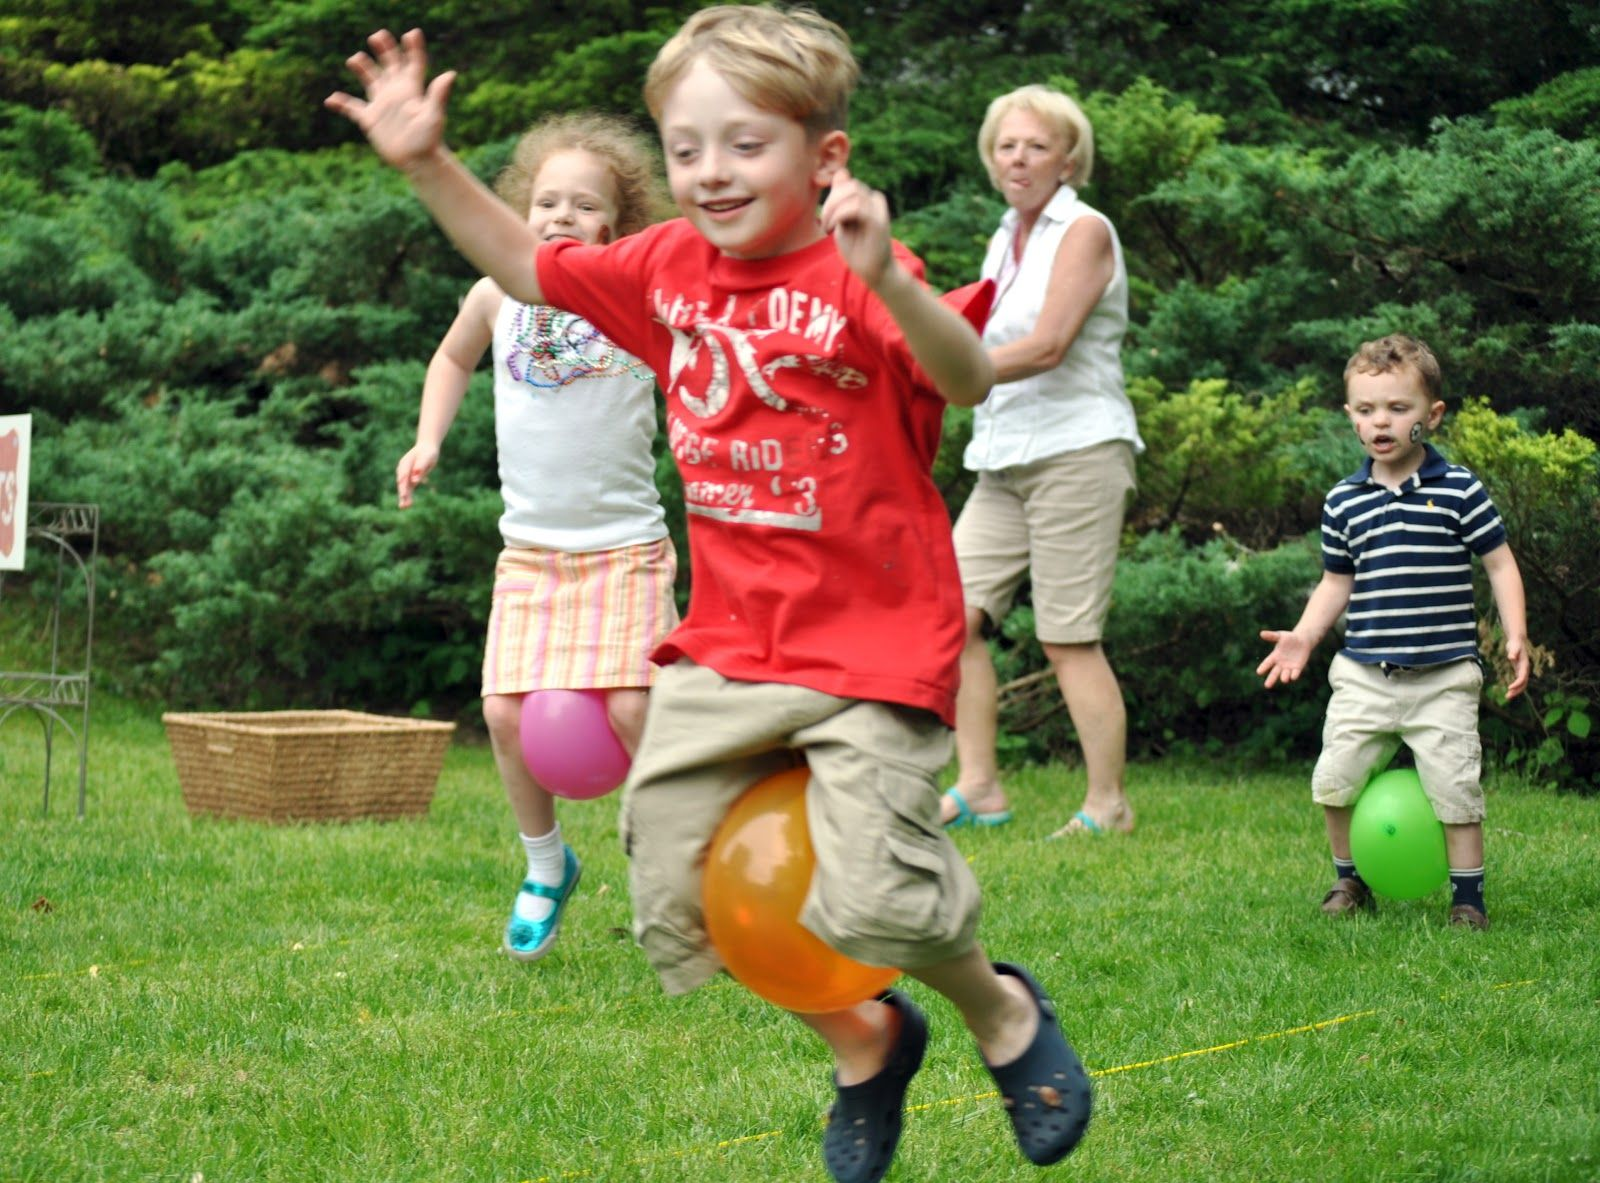 Pin By Kristen Conklin On Party Games Outdoor Picnic Basic Skills In Relay Race Blog Balloon 16001183 Pixels Family Reunion